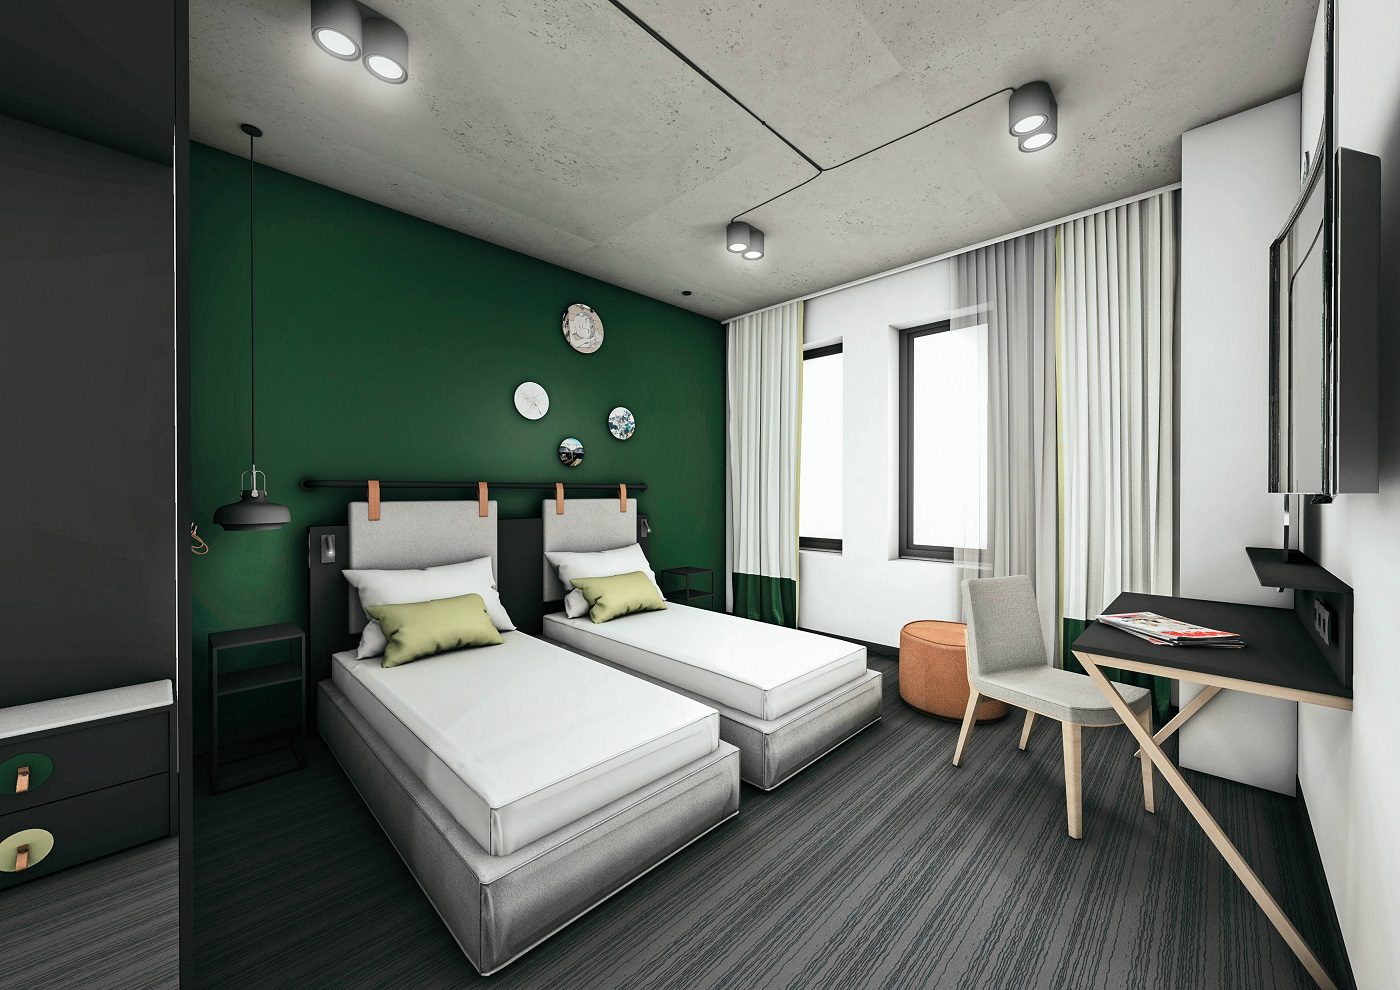 Rendering of modern guestroom with dark-green wallcoverings and twin beds